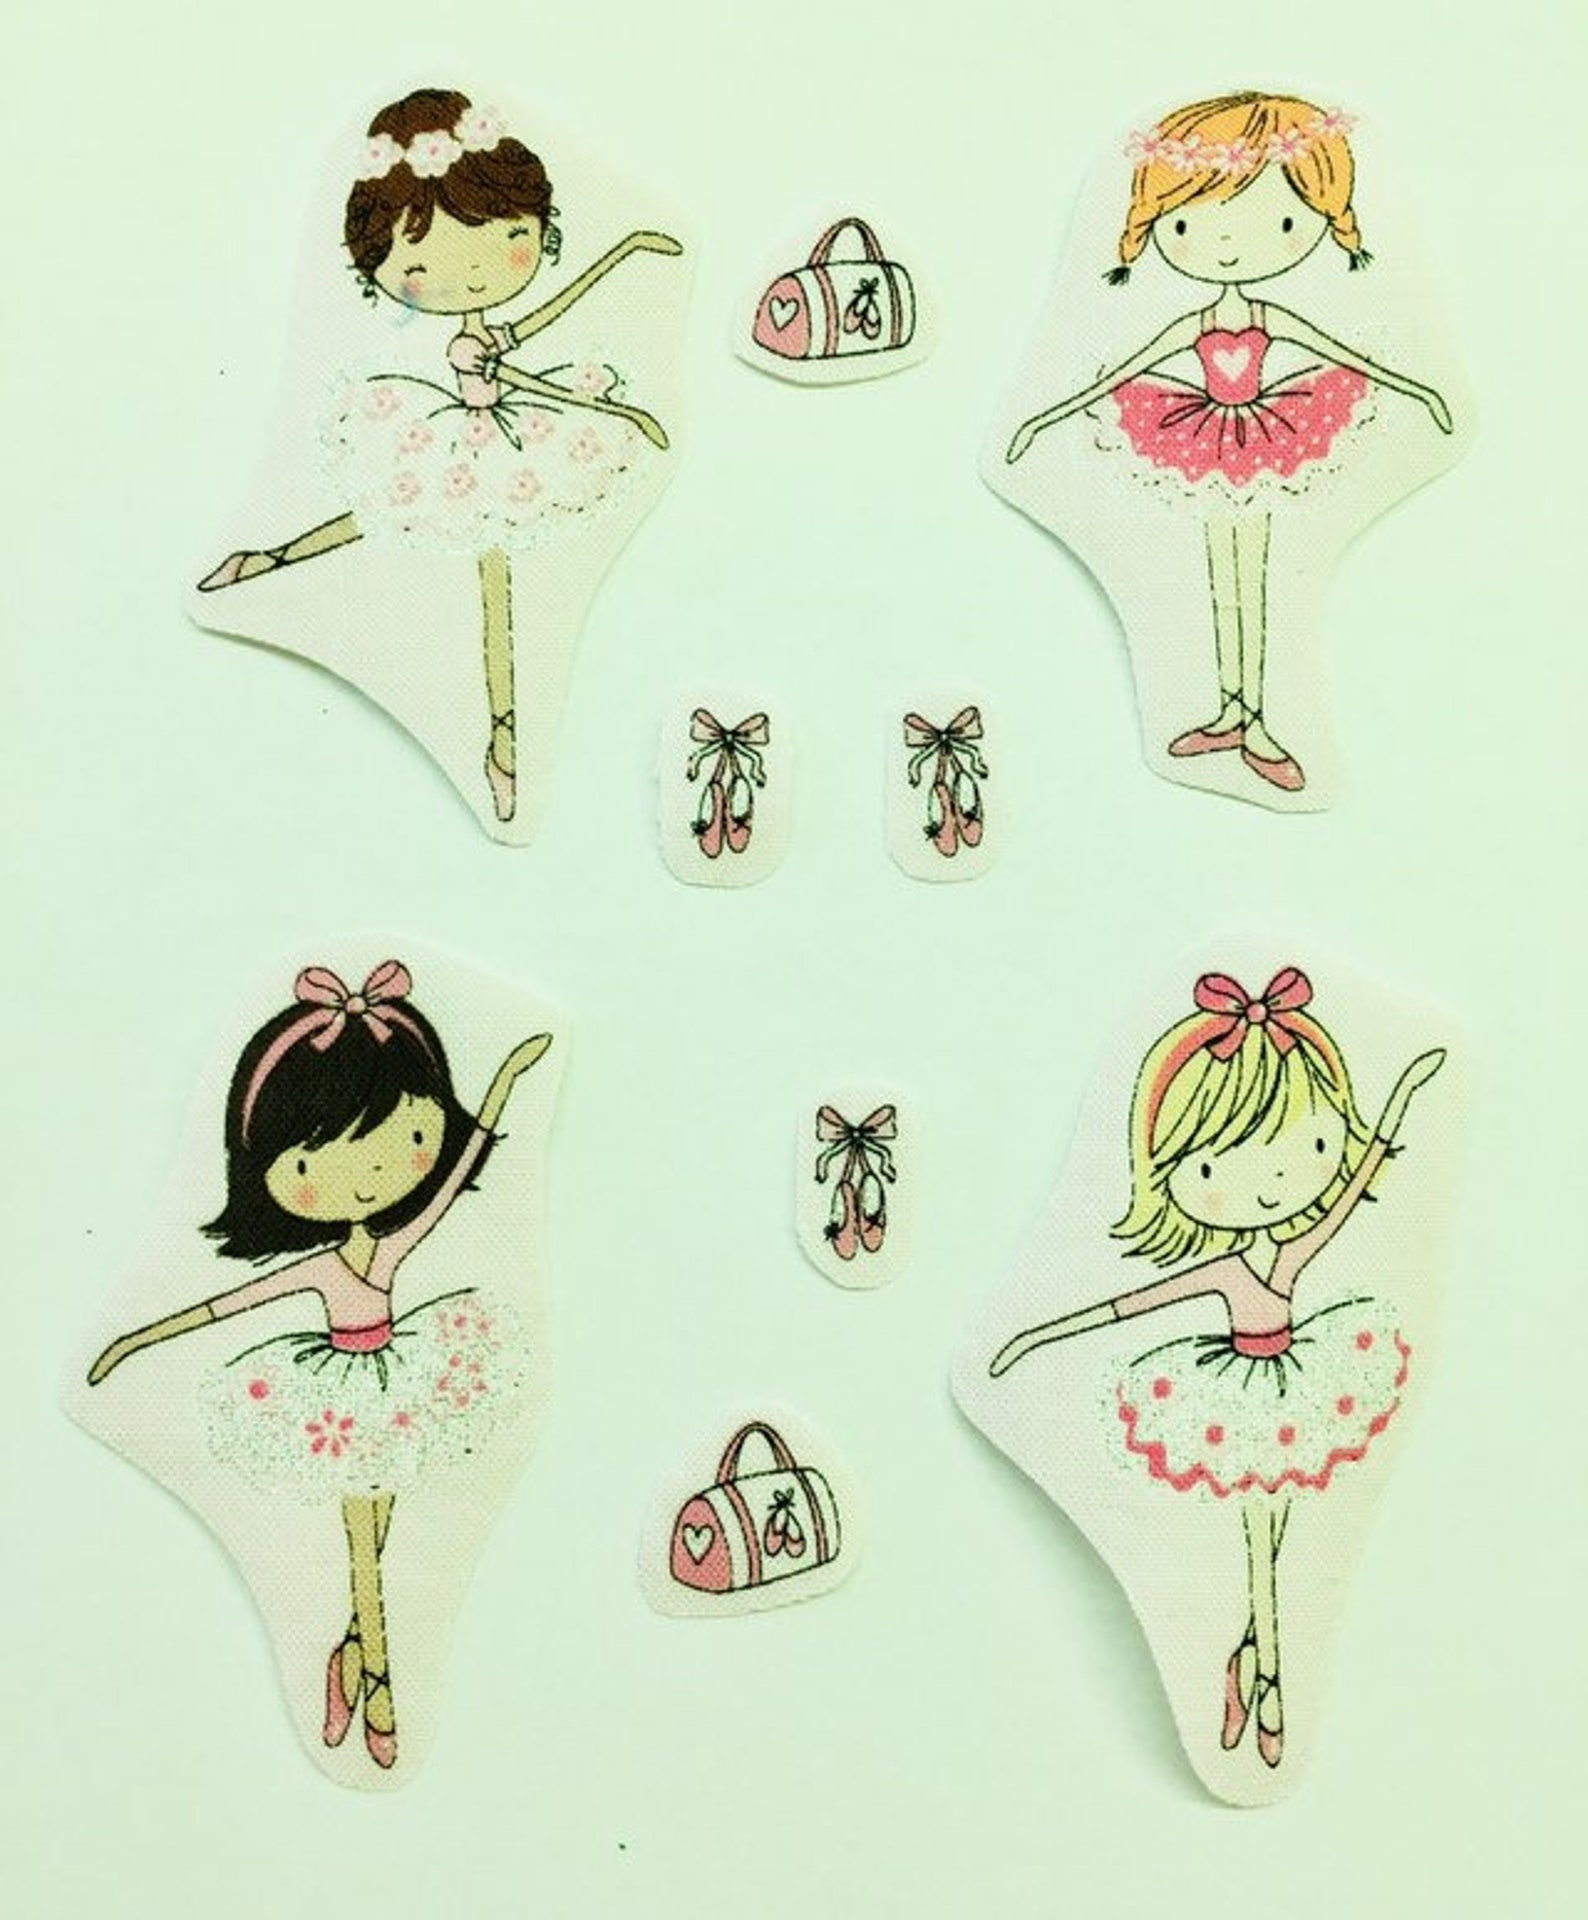 ballerina iron on patch ballerina fabric applique motifs. set of iron on transfers/sew on motifs fabric embellishments ballet mo